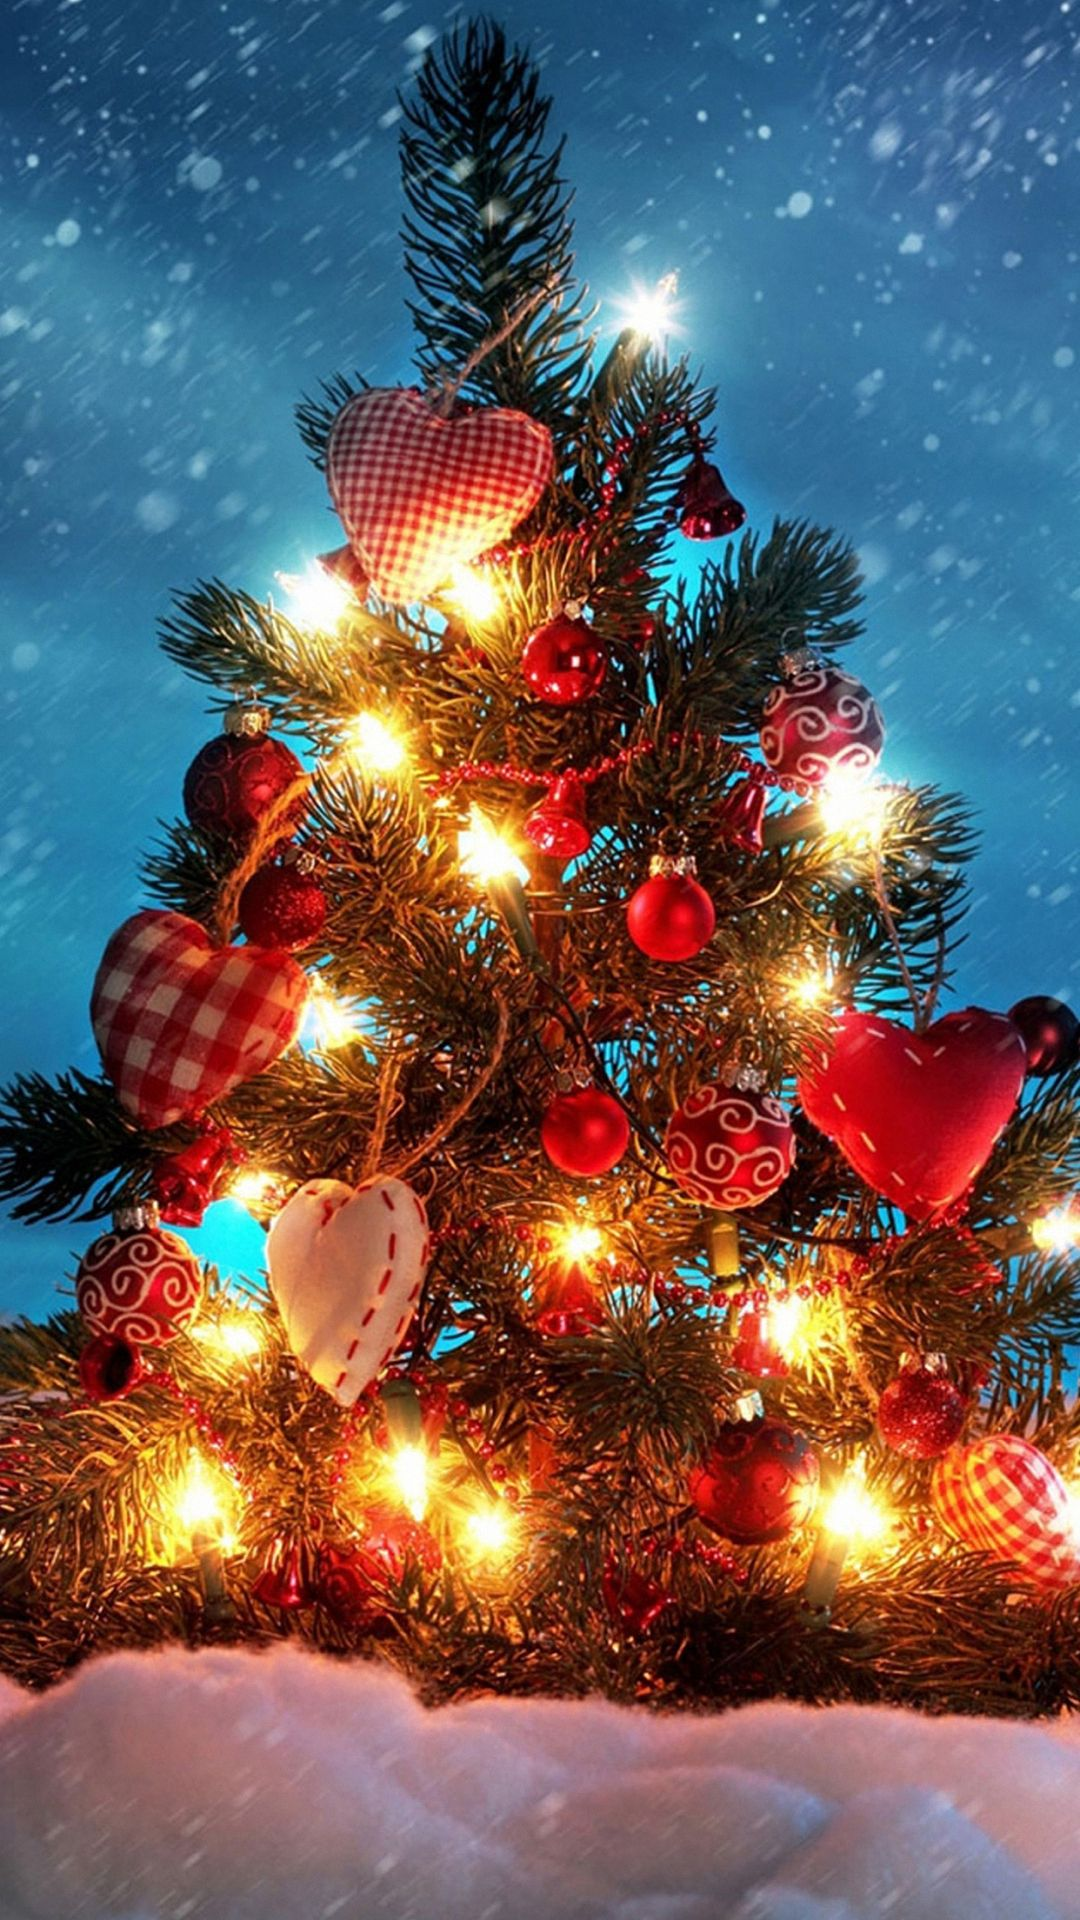 christmas tree heart love decorations iphone 6 wallpapers hd